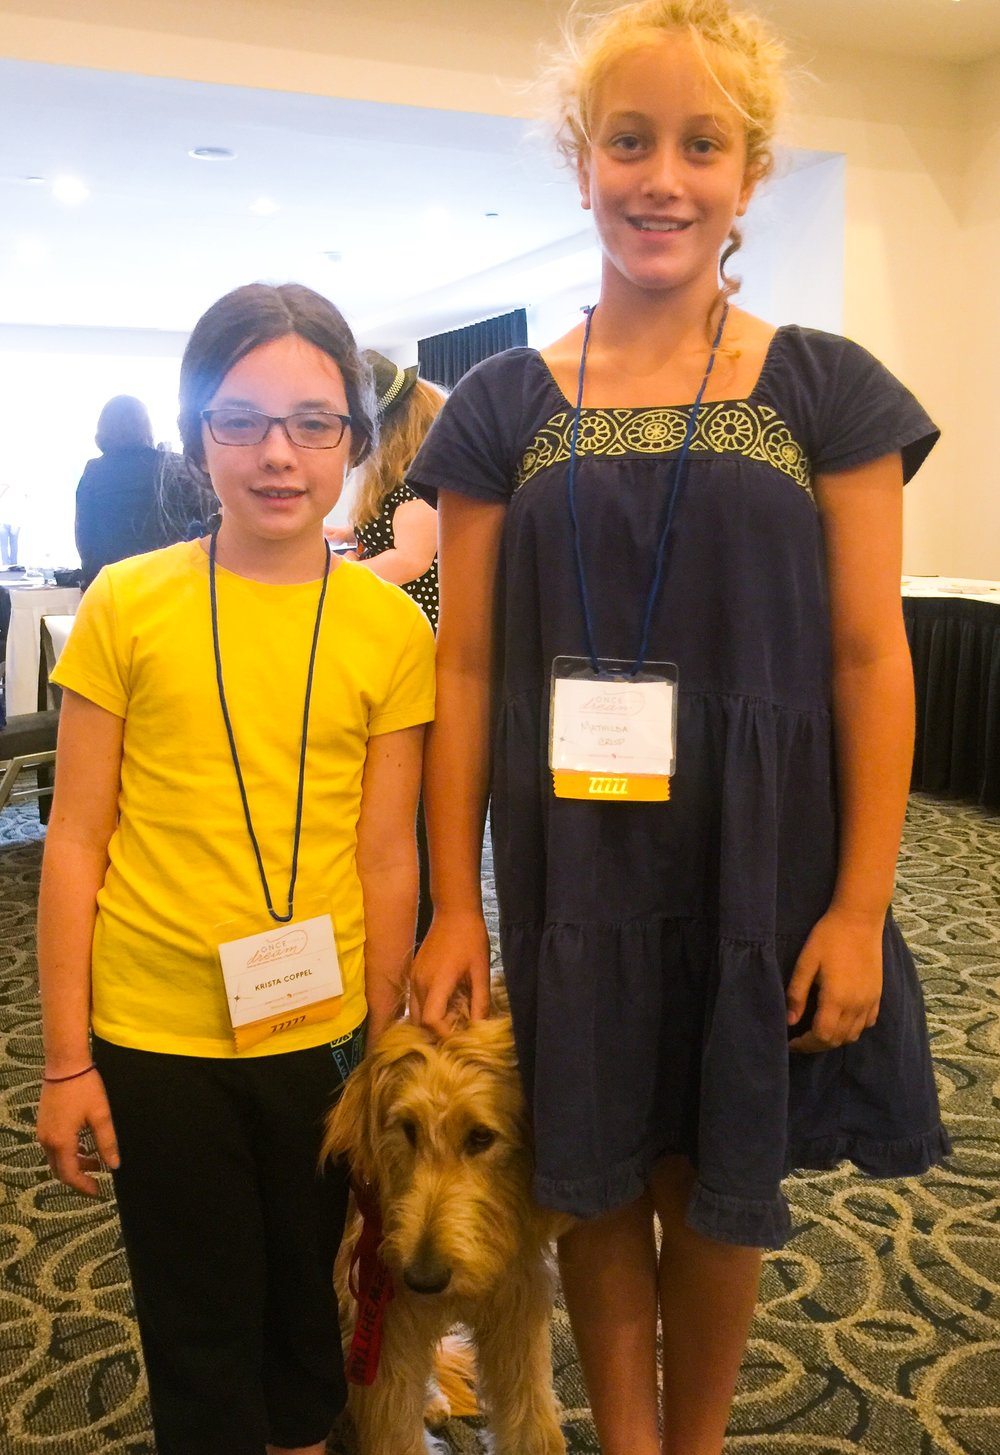 Mathilda with Krista and her service dog Buddy.